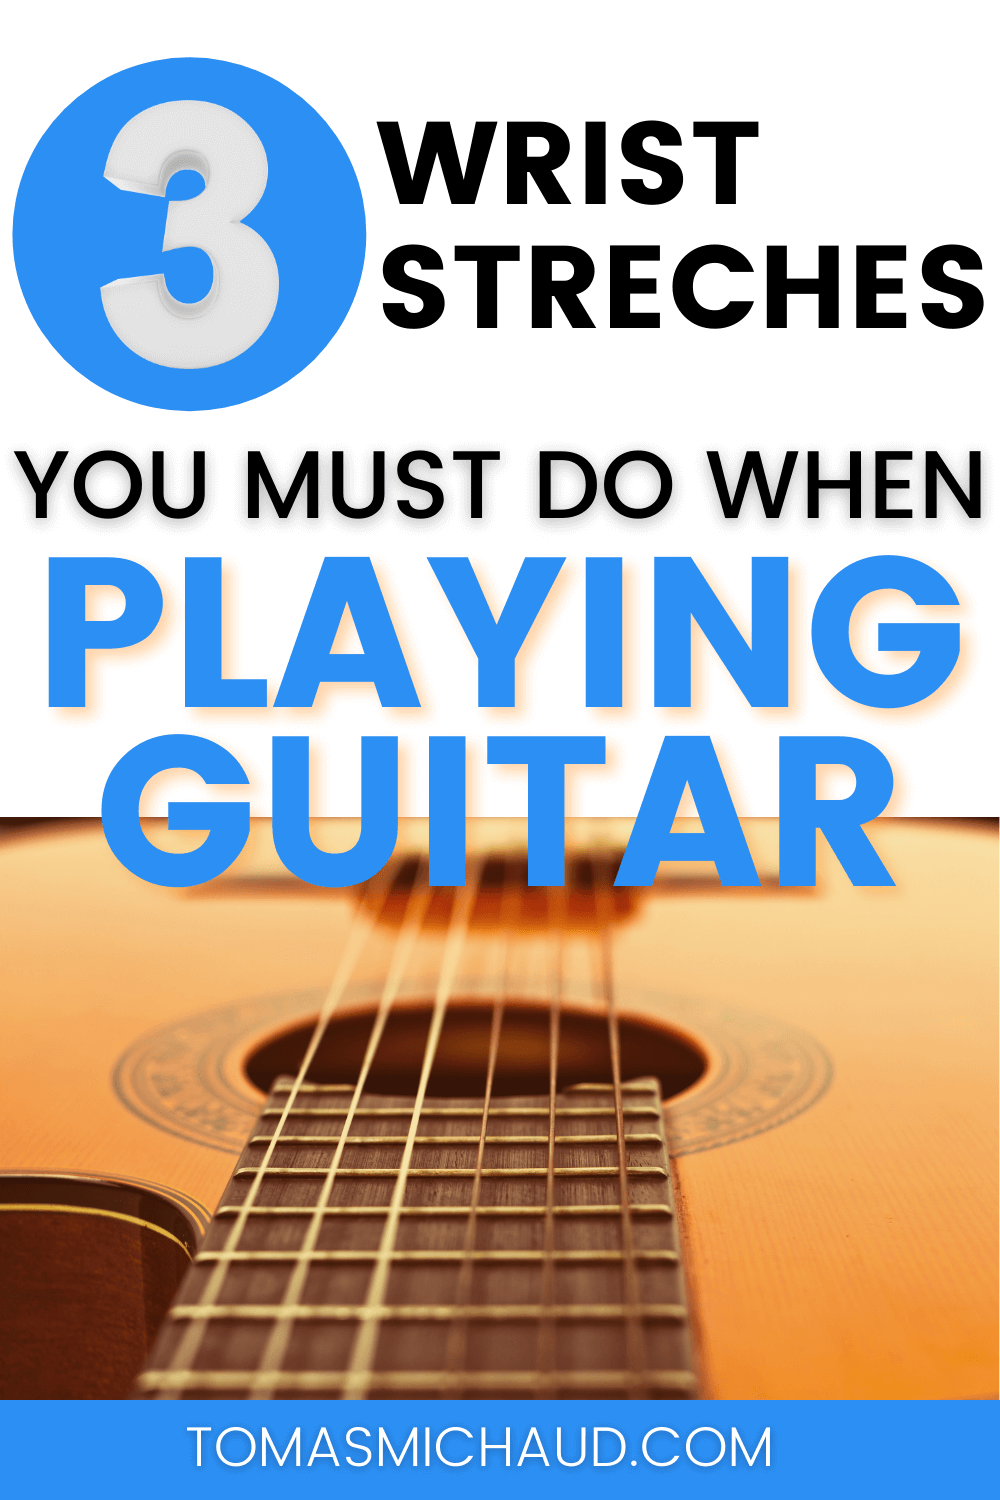 3 Wrist Stretches You Must Do When Playing Guitar